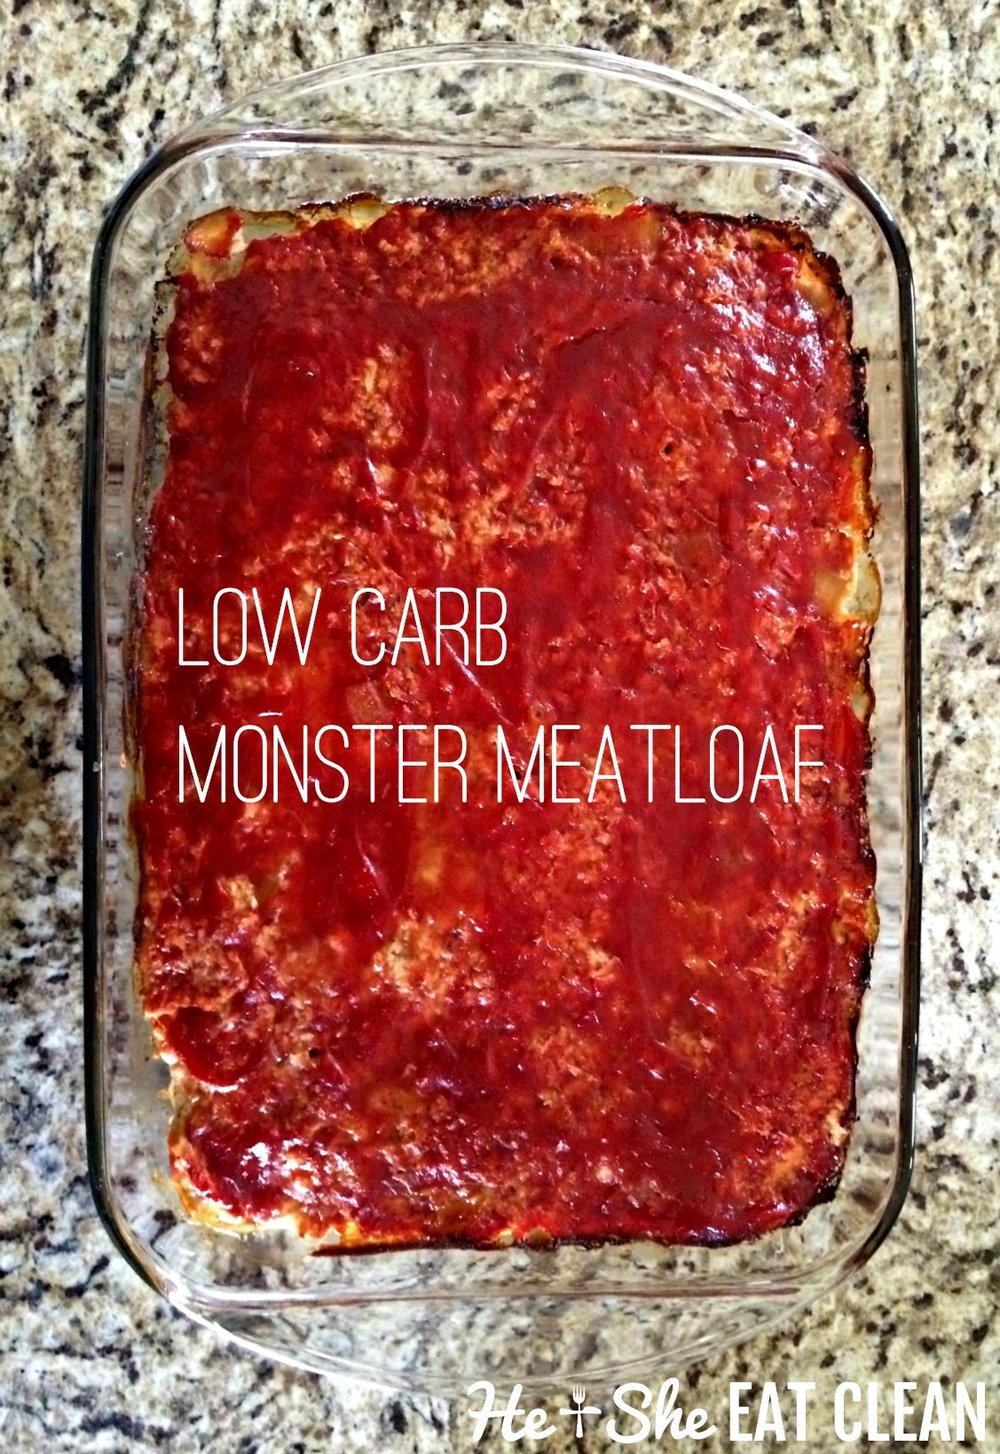 meatloaf with ketchup on top in a glass dish on a granite countertop